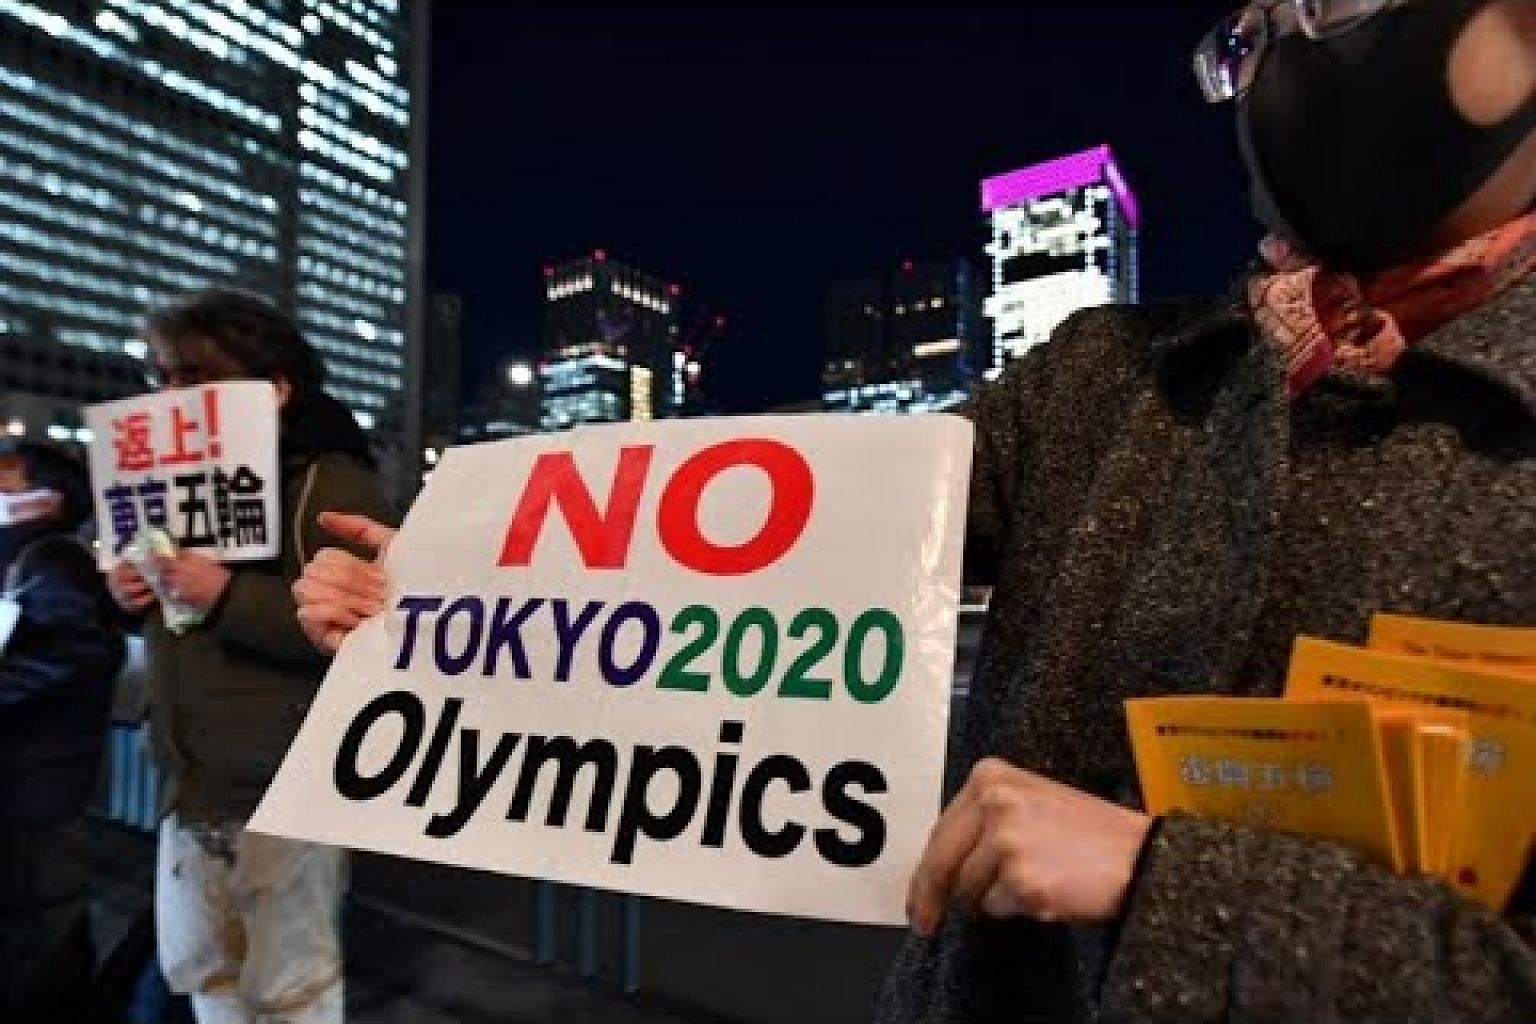 2020 Olympics will be delayed up to a year: Japan PM Abe